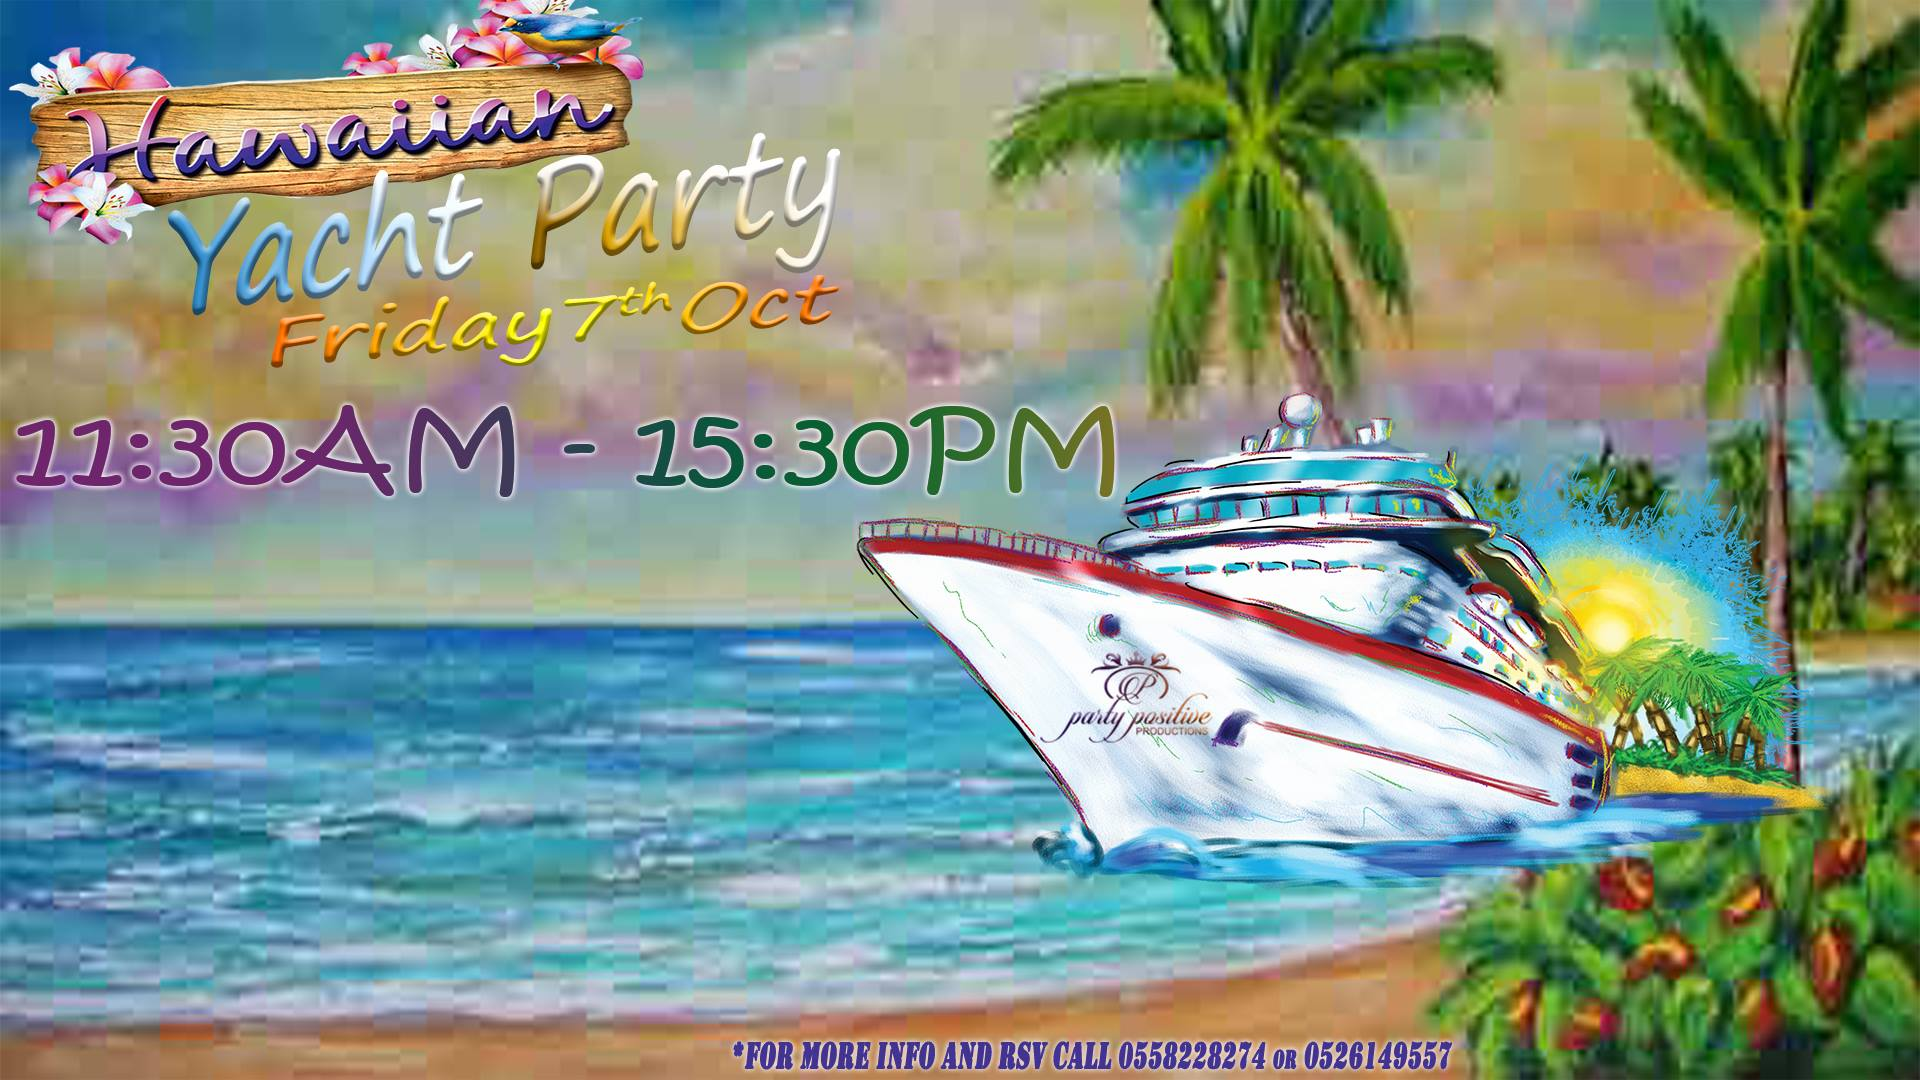 Party Positive Hawaiian Yacht Party Early Edition